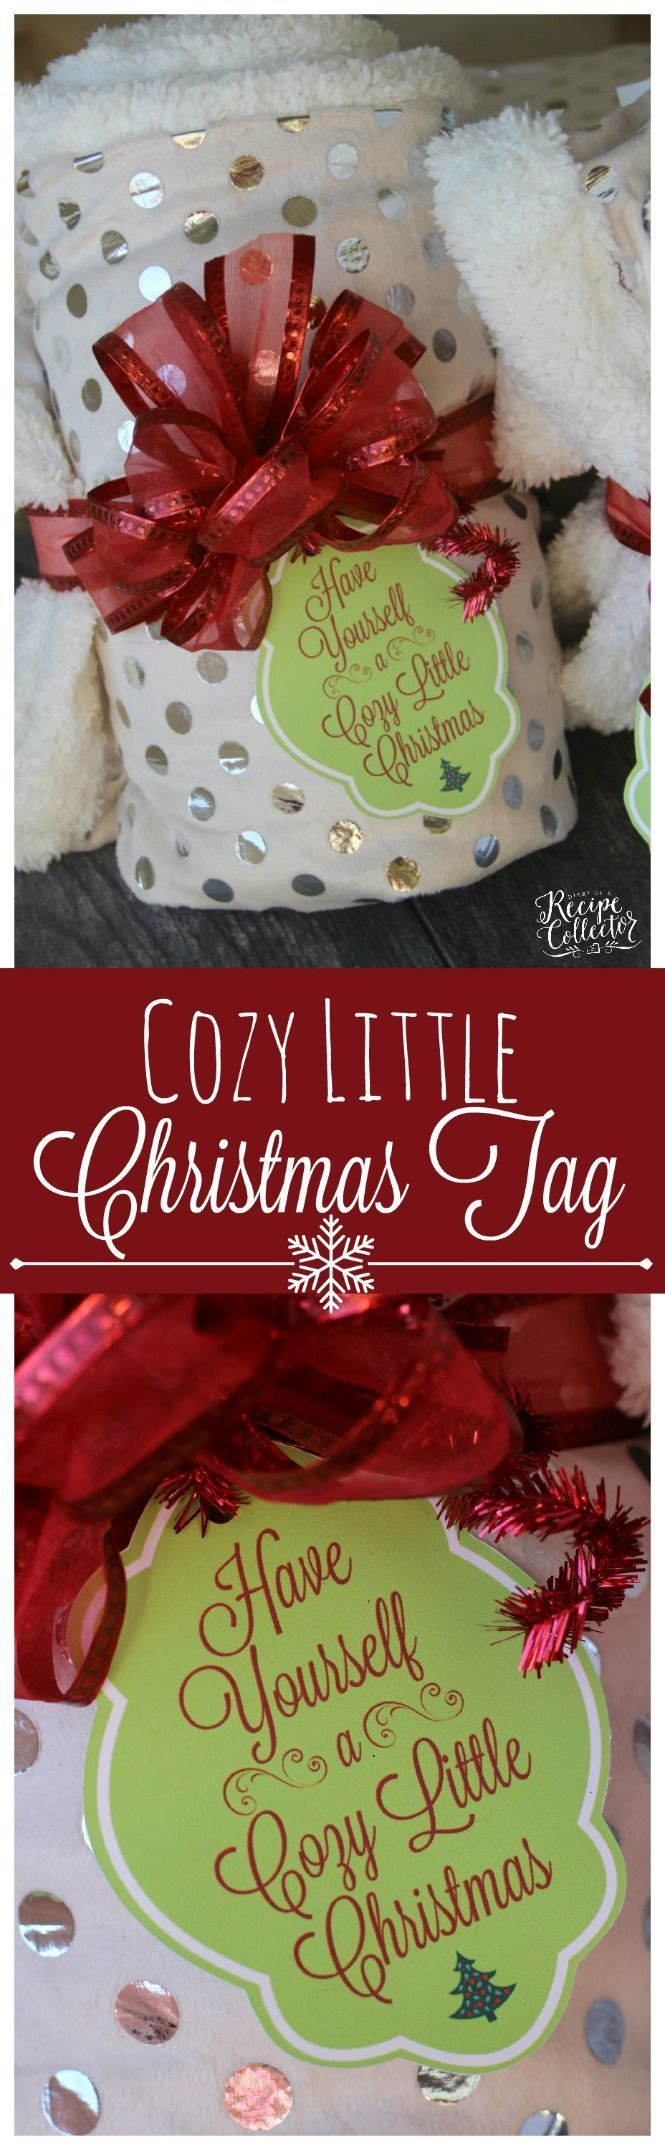 Cozy Little Christmas Tag & Gift Idea | My Mommy Teacher Gifts ...